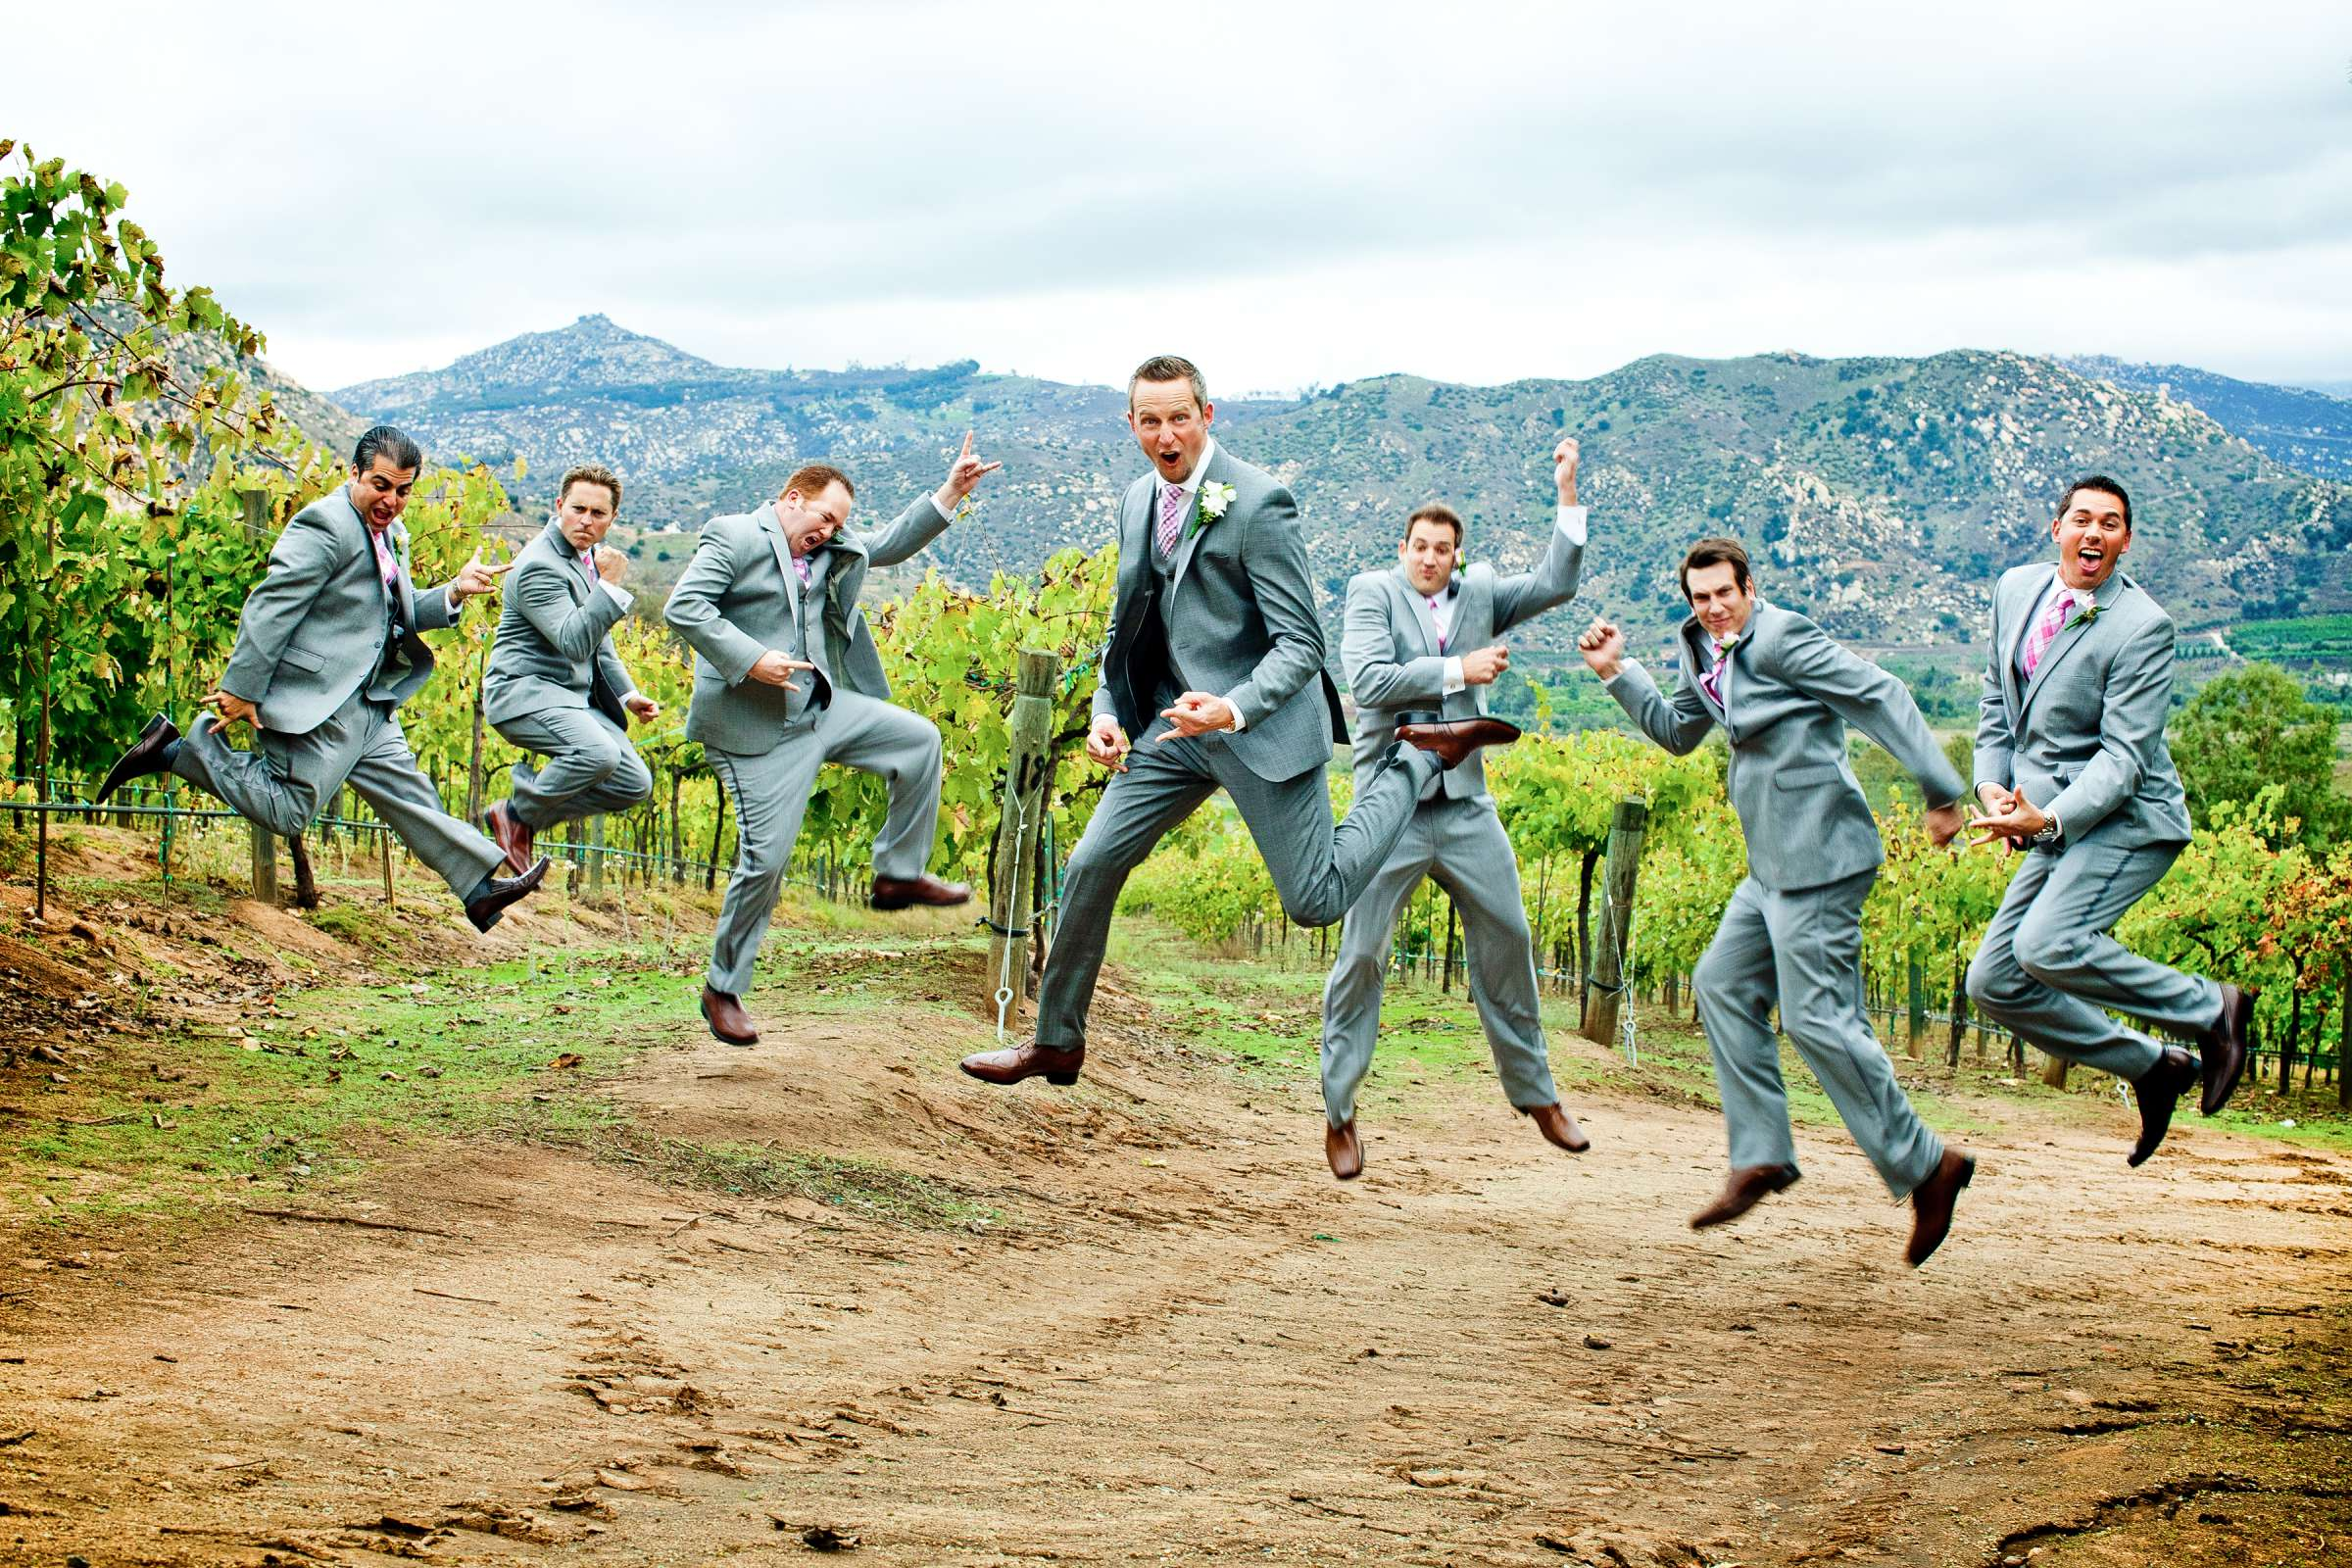 Orfila Vineyards Wedding, Mindy and Bryan Wedding Photo #17 by True Photography